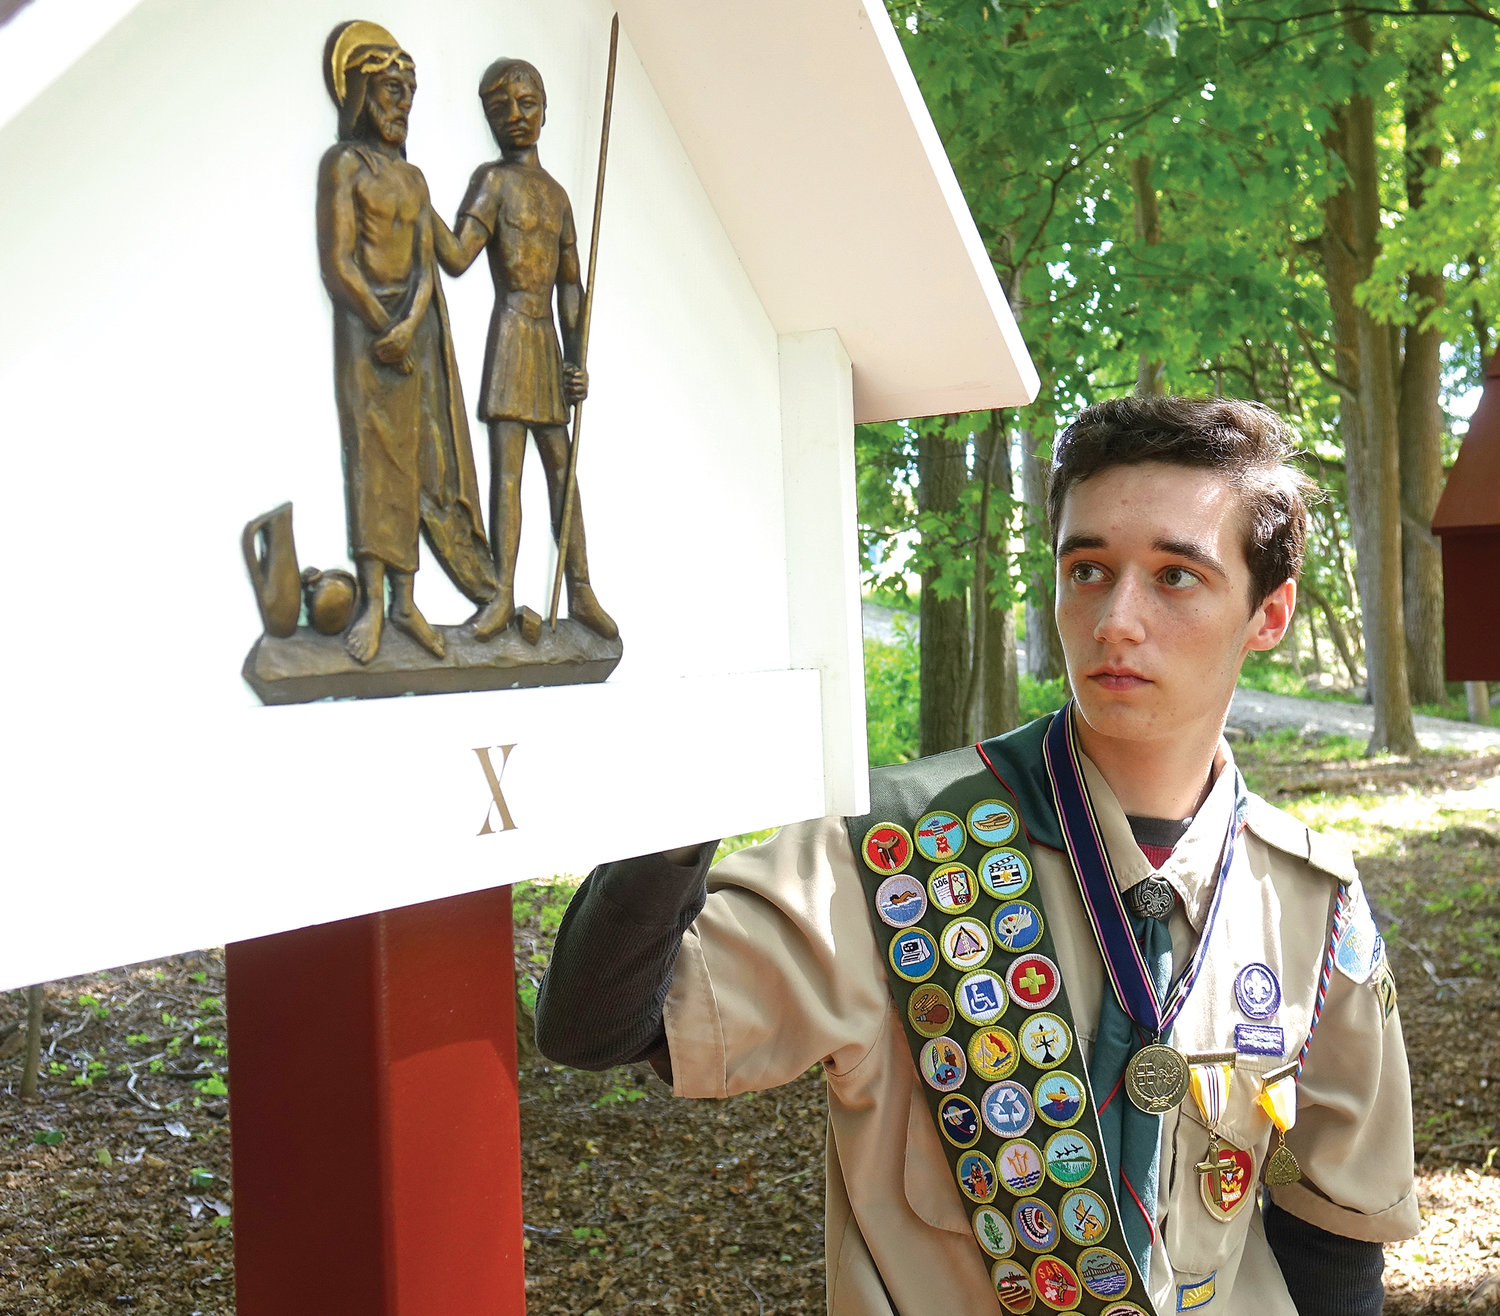 Scout Philip Dever repurposed the Stations of the Cross plaques from the convent chapel to create an outdoor Way of the Cross for his Eagle Scout project.